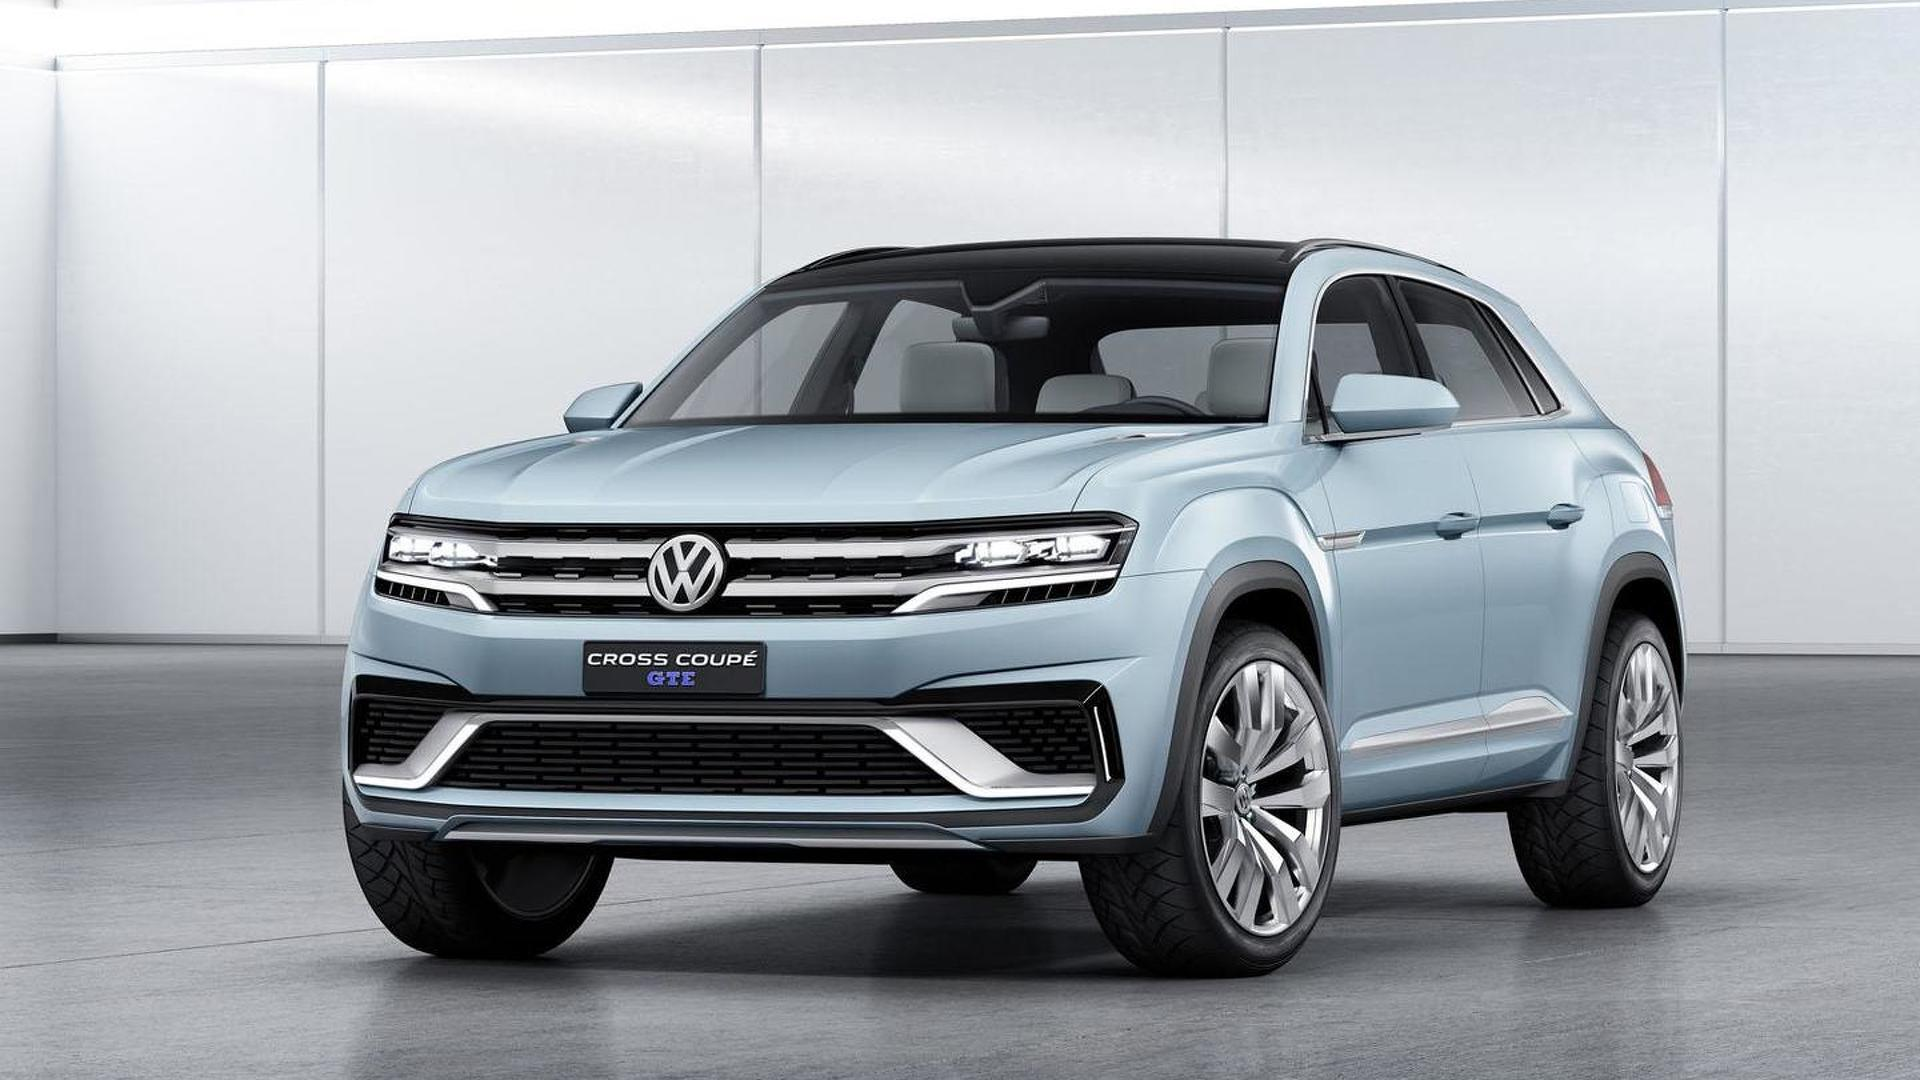 Volkswagen Cross Coupe GTE 2015